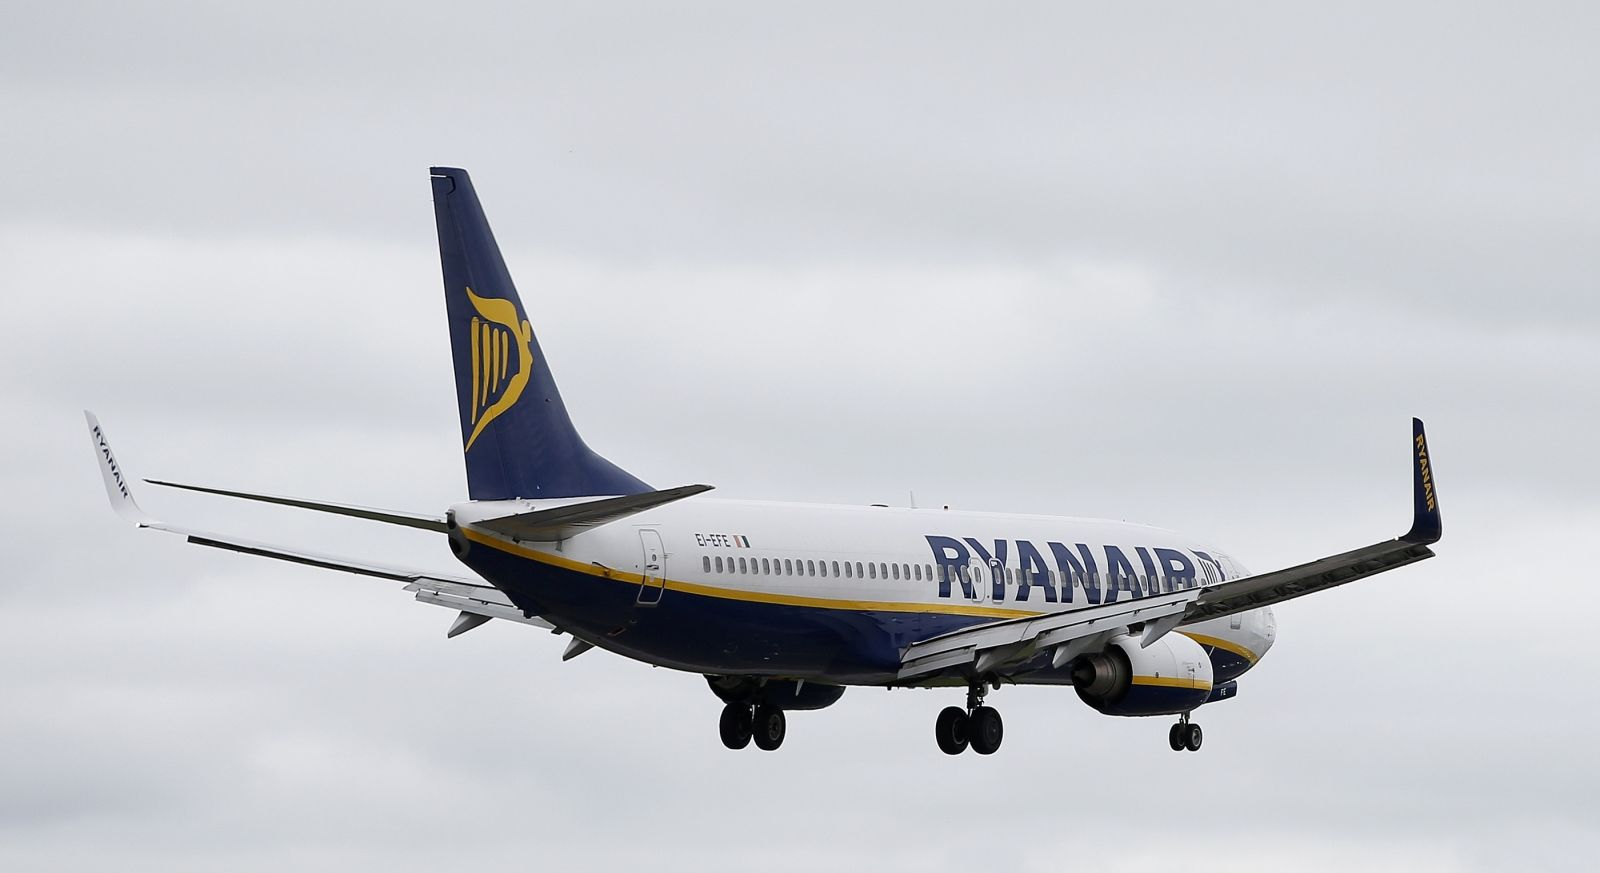 EU sues France over Airlines